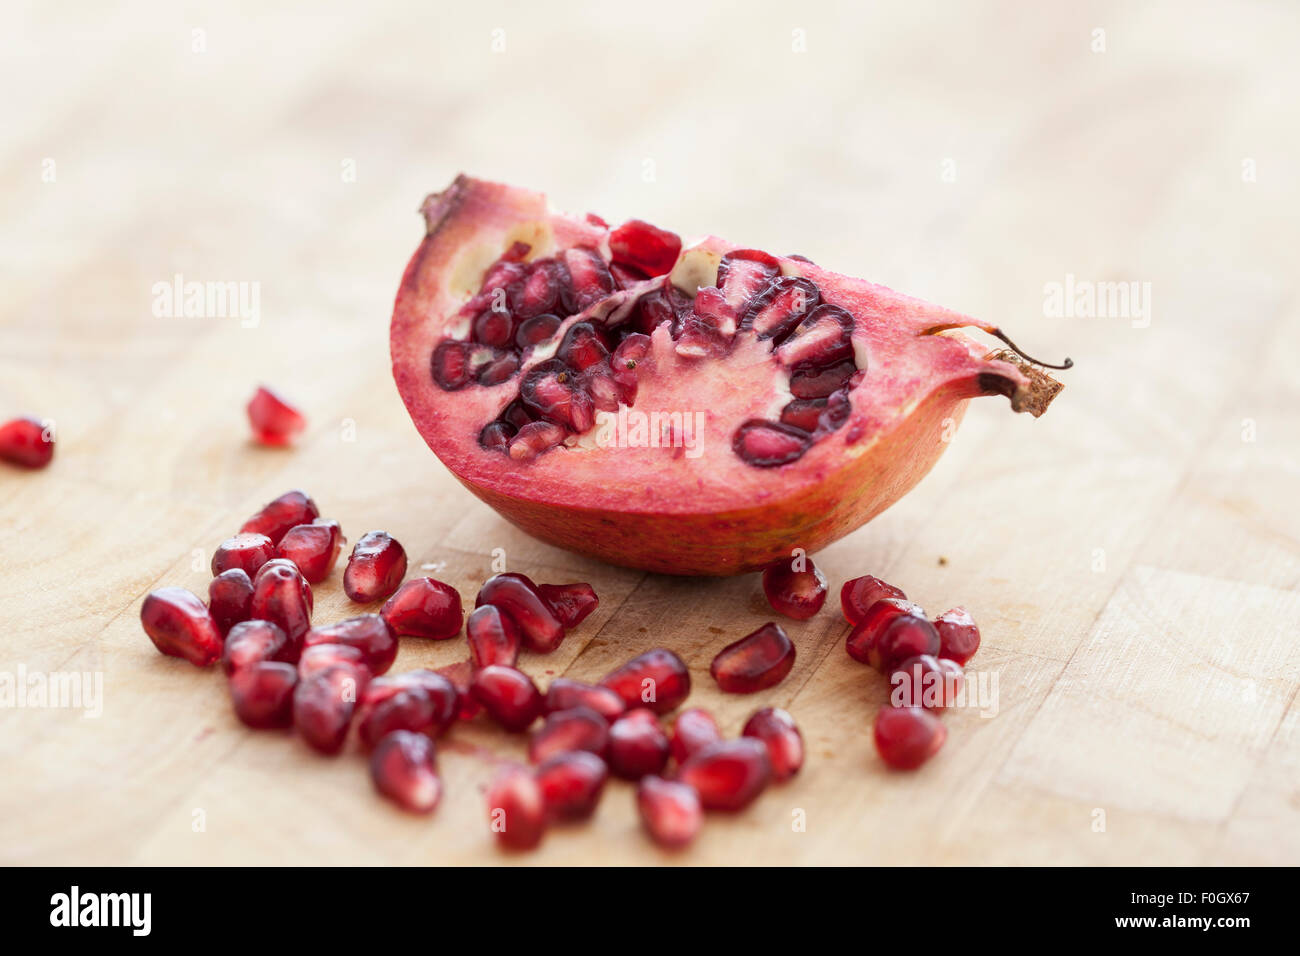 A sliced pomegranate with seeds or arils photographed on a wooden surface with window light. - Stock Image